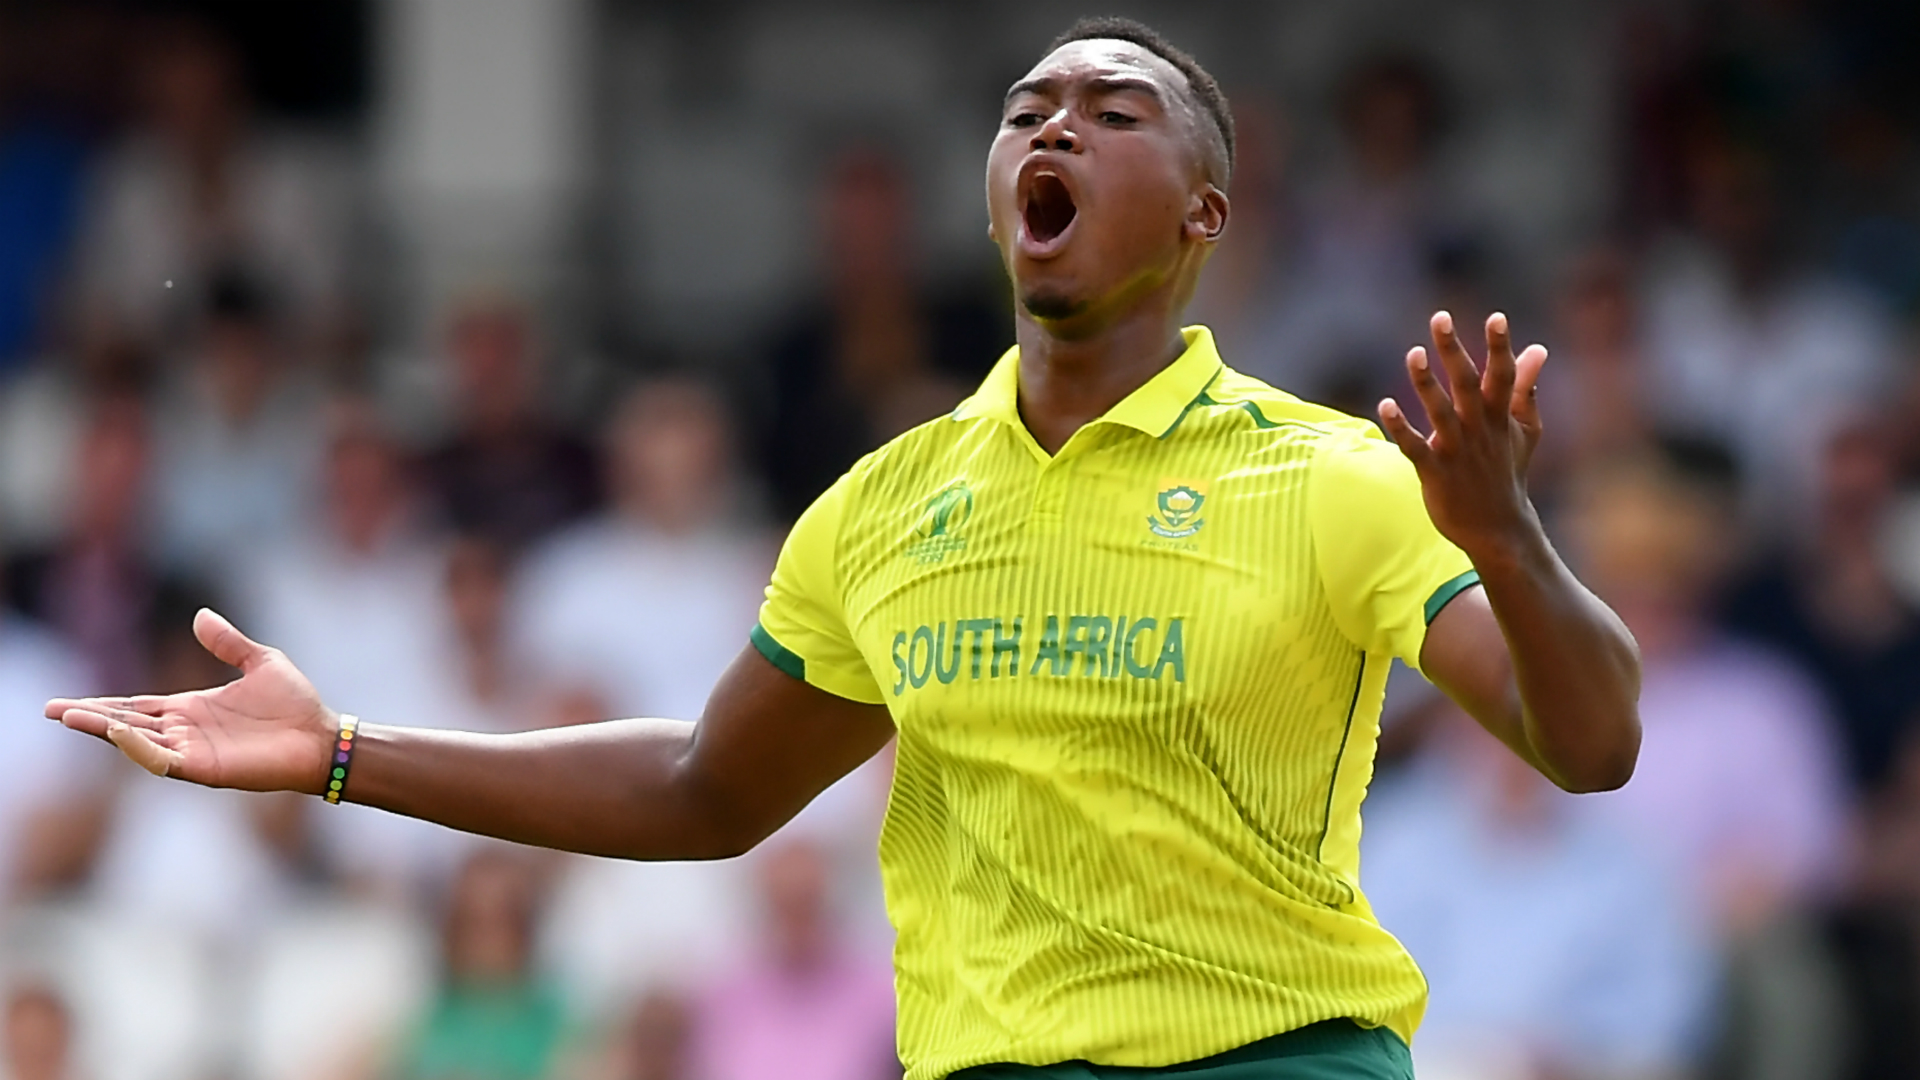 Paceman Lungi Ngidi has suffered another injury setback and is set to miss the Boxing Day Test against England.